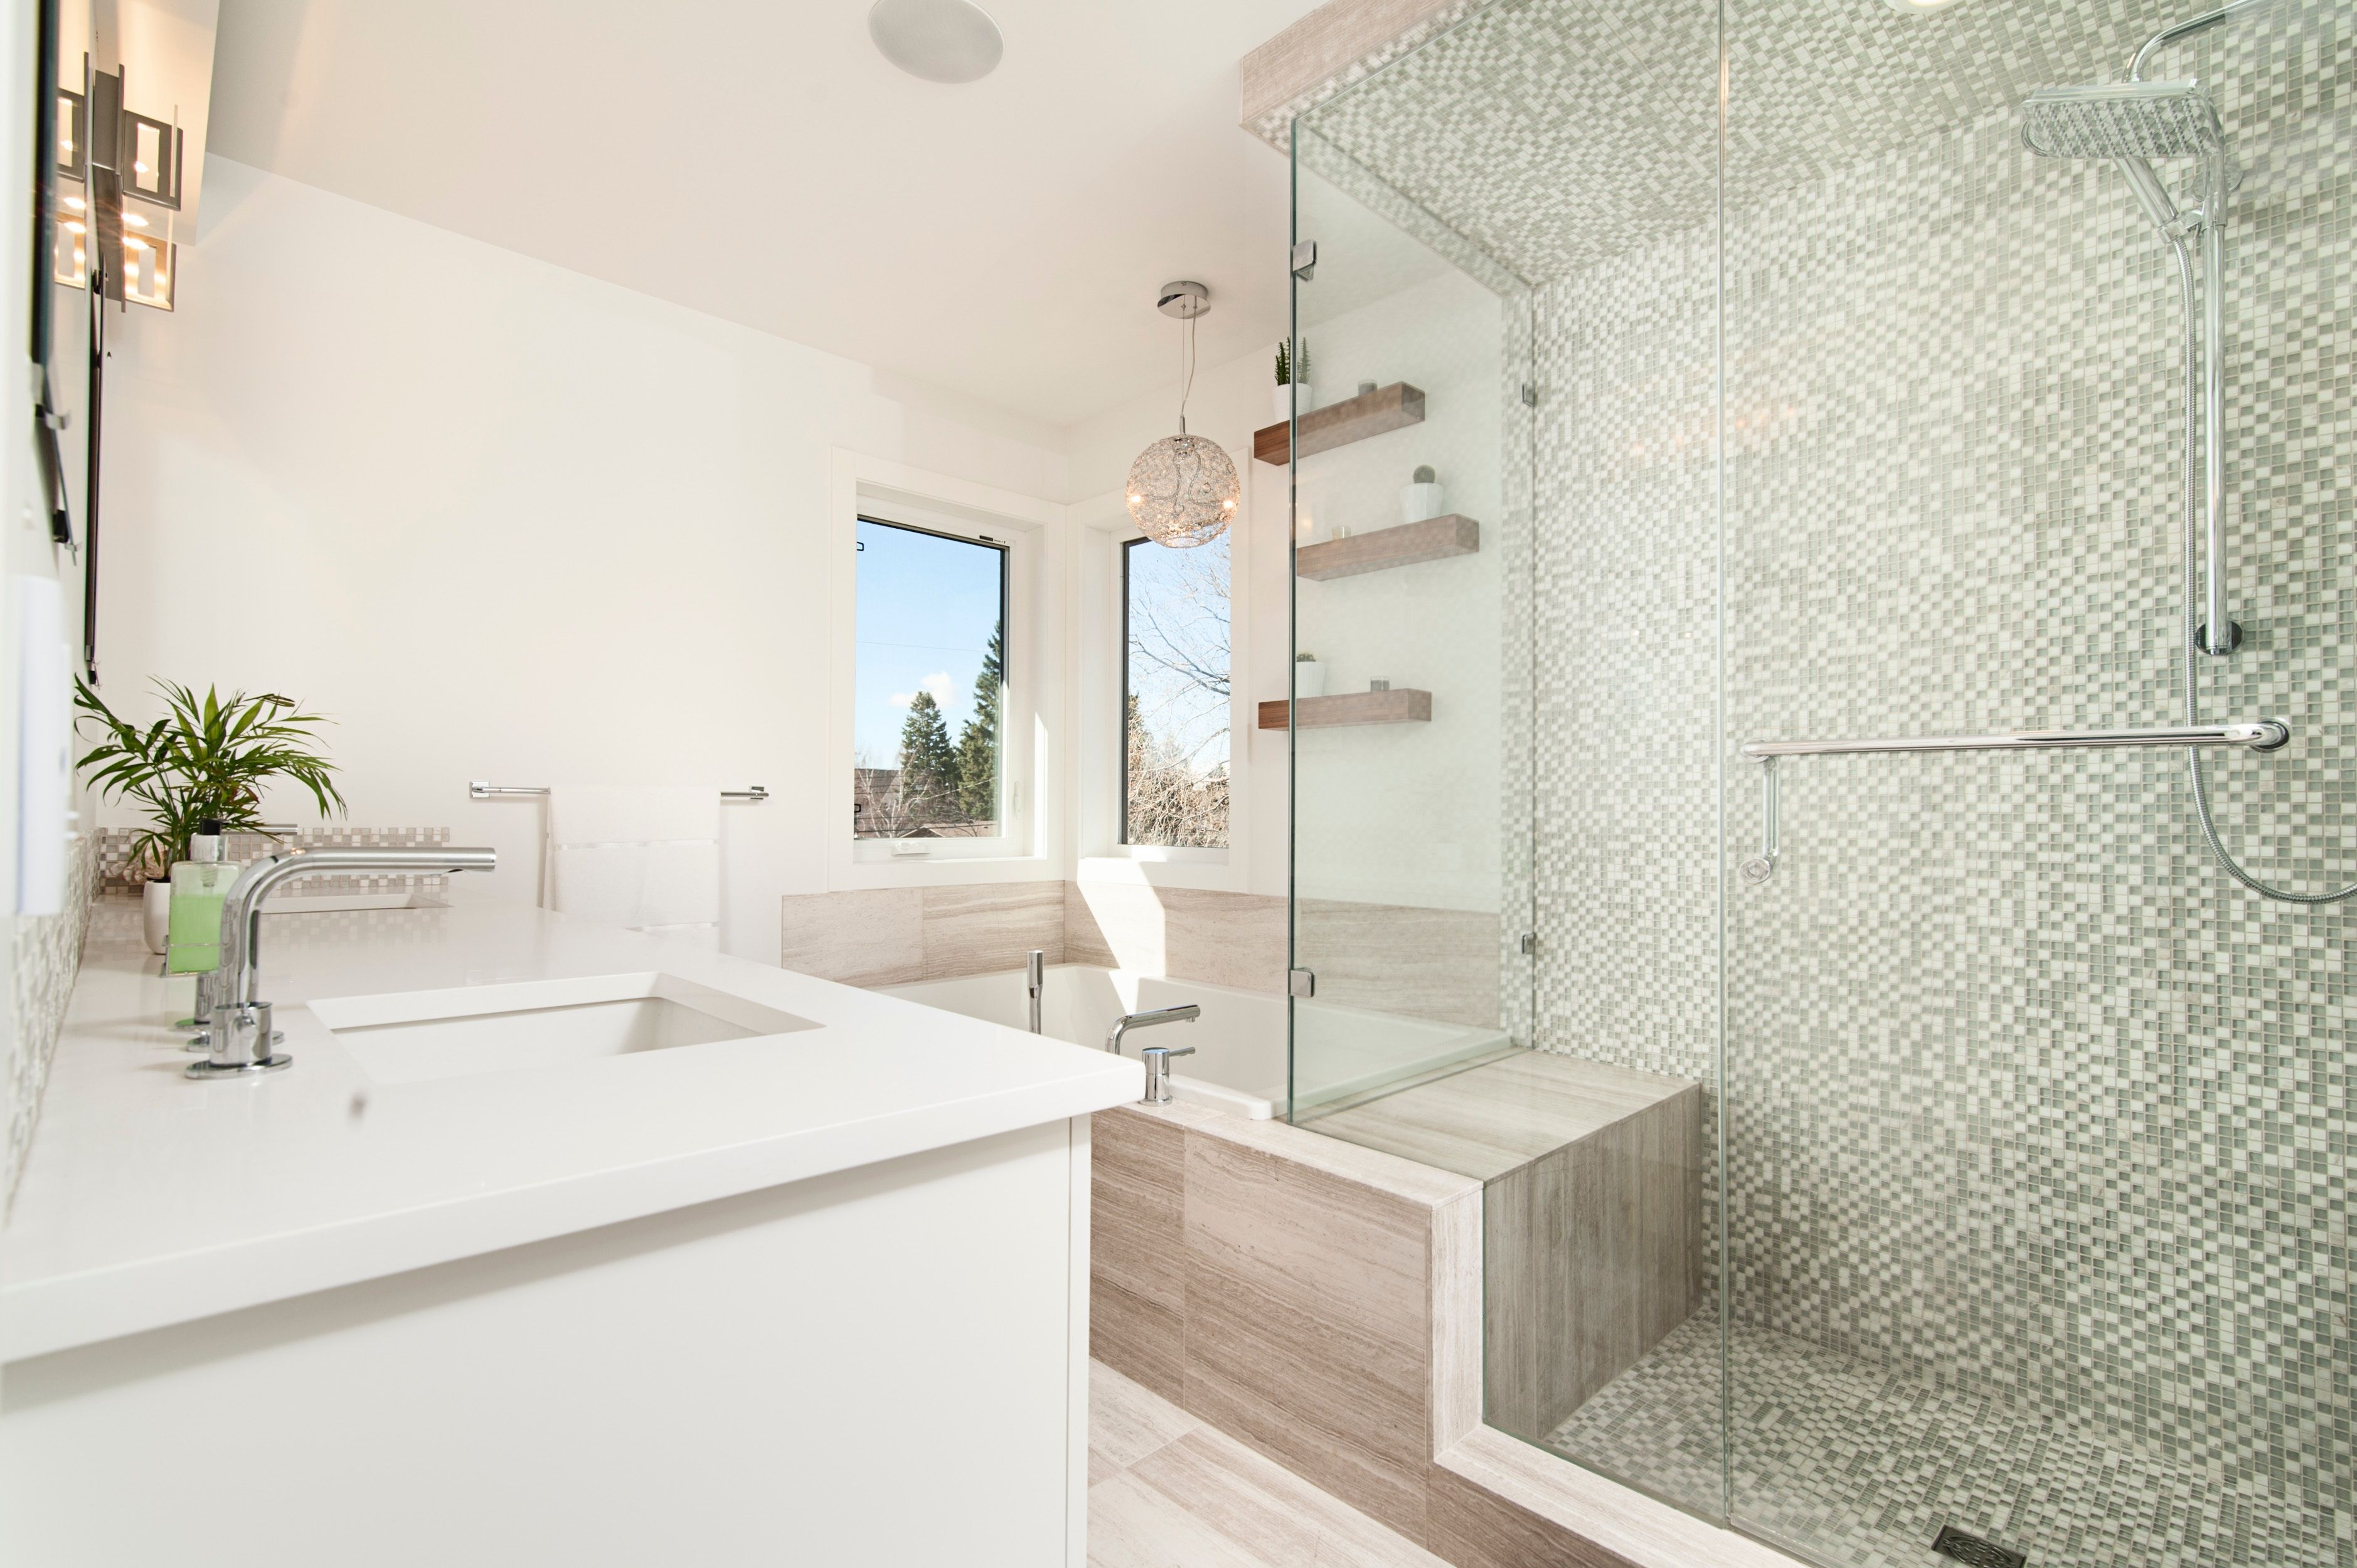 Luxury and clean bathroom